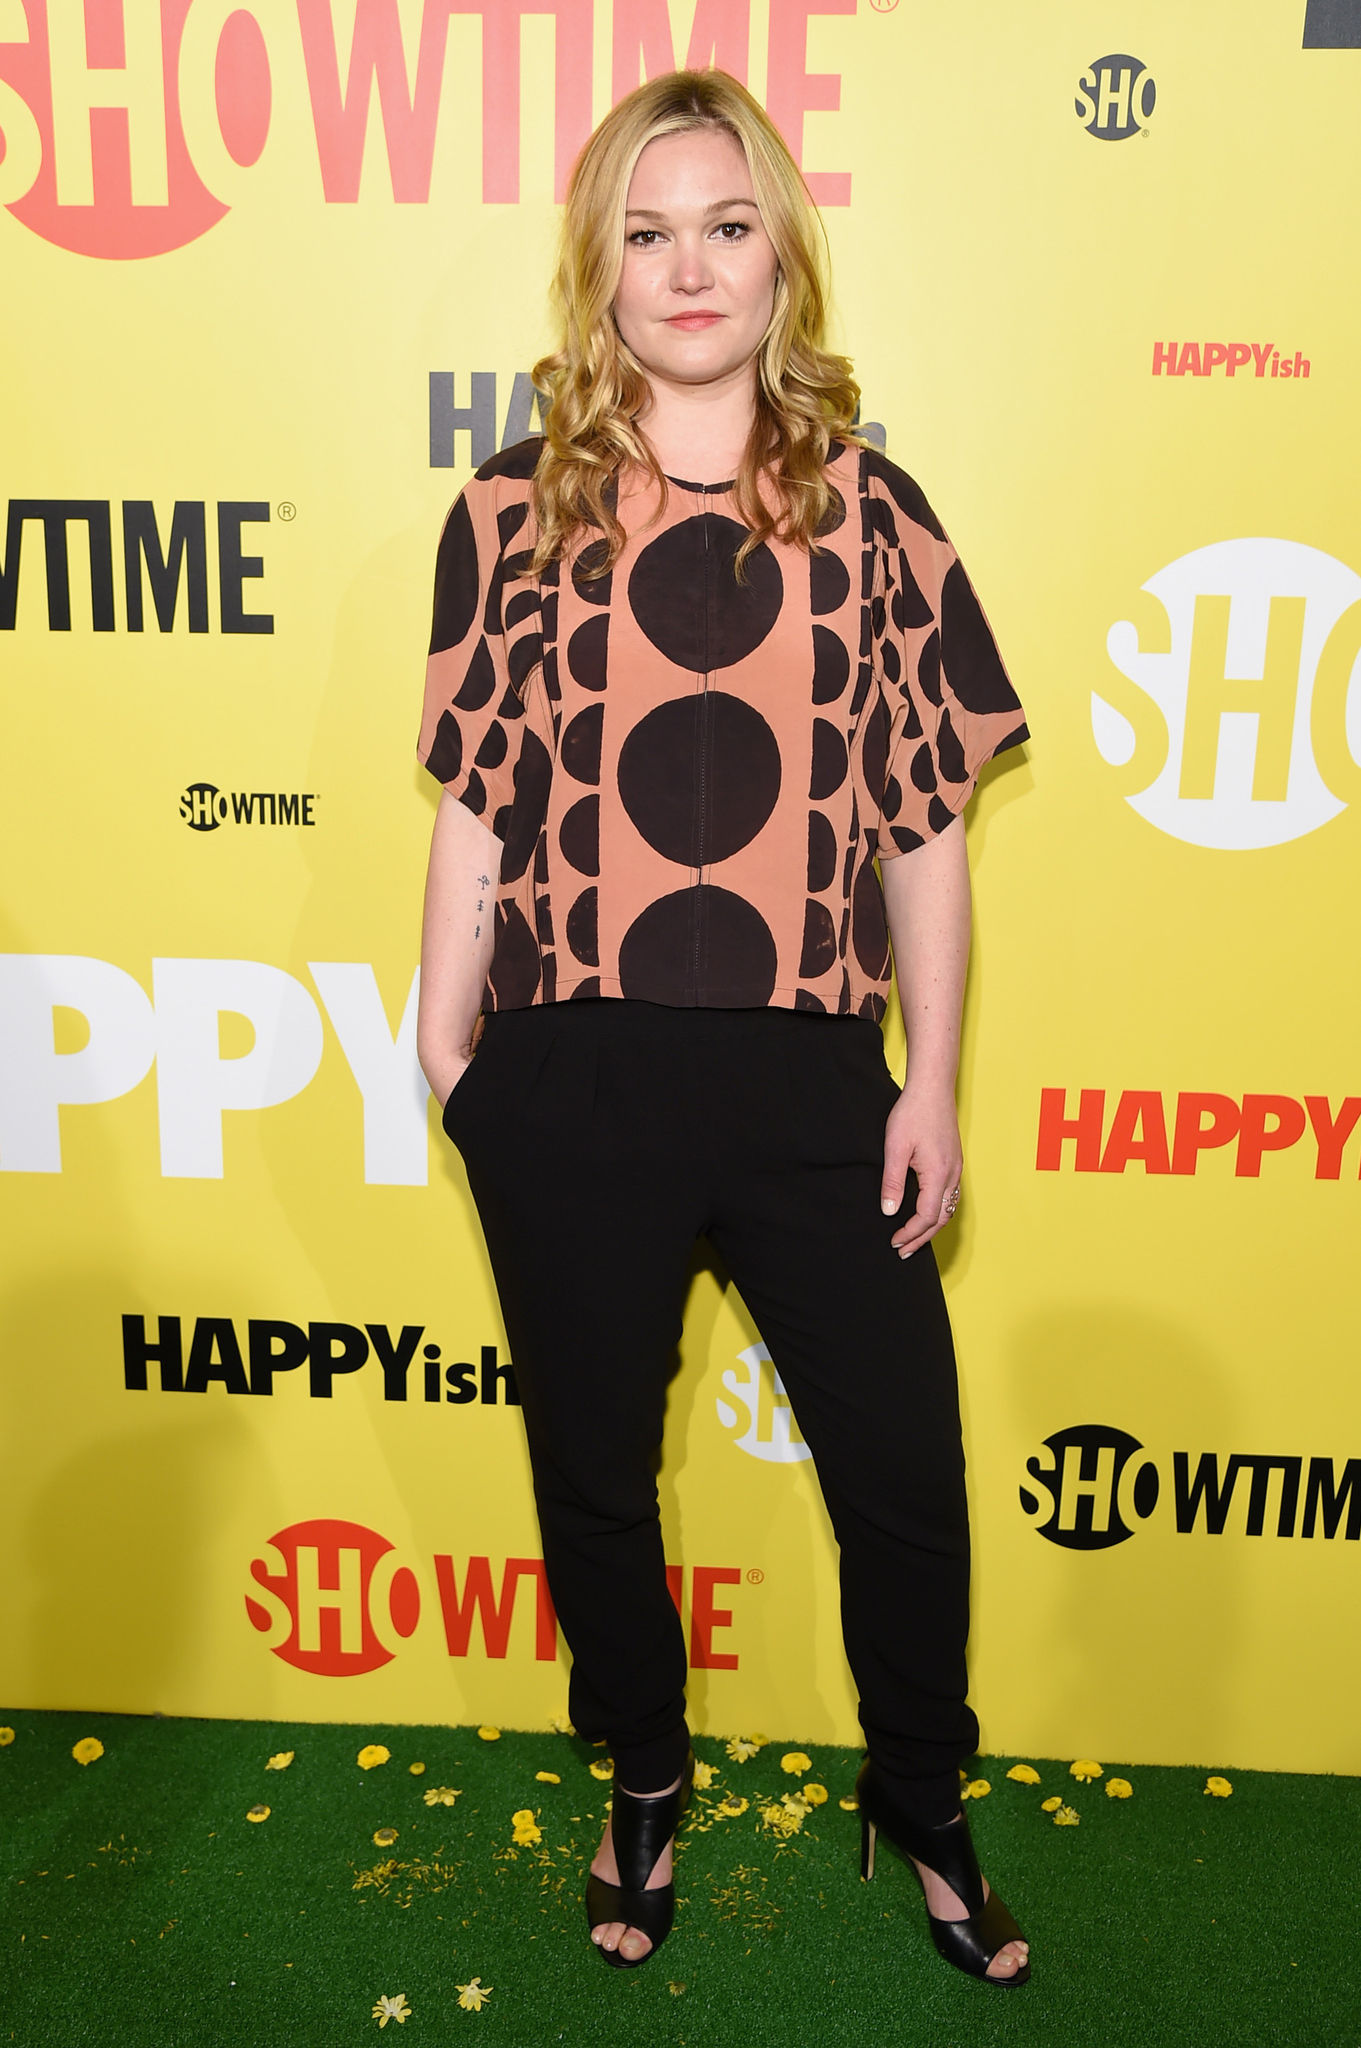 Julia Stiles at an event for Happyish (2015)